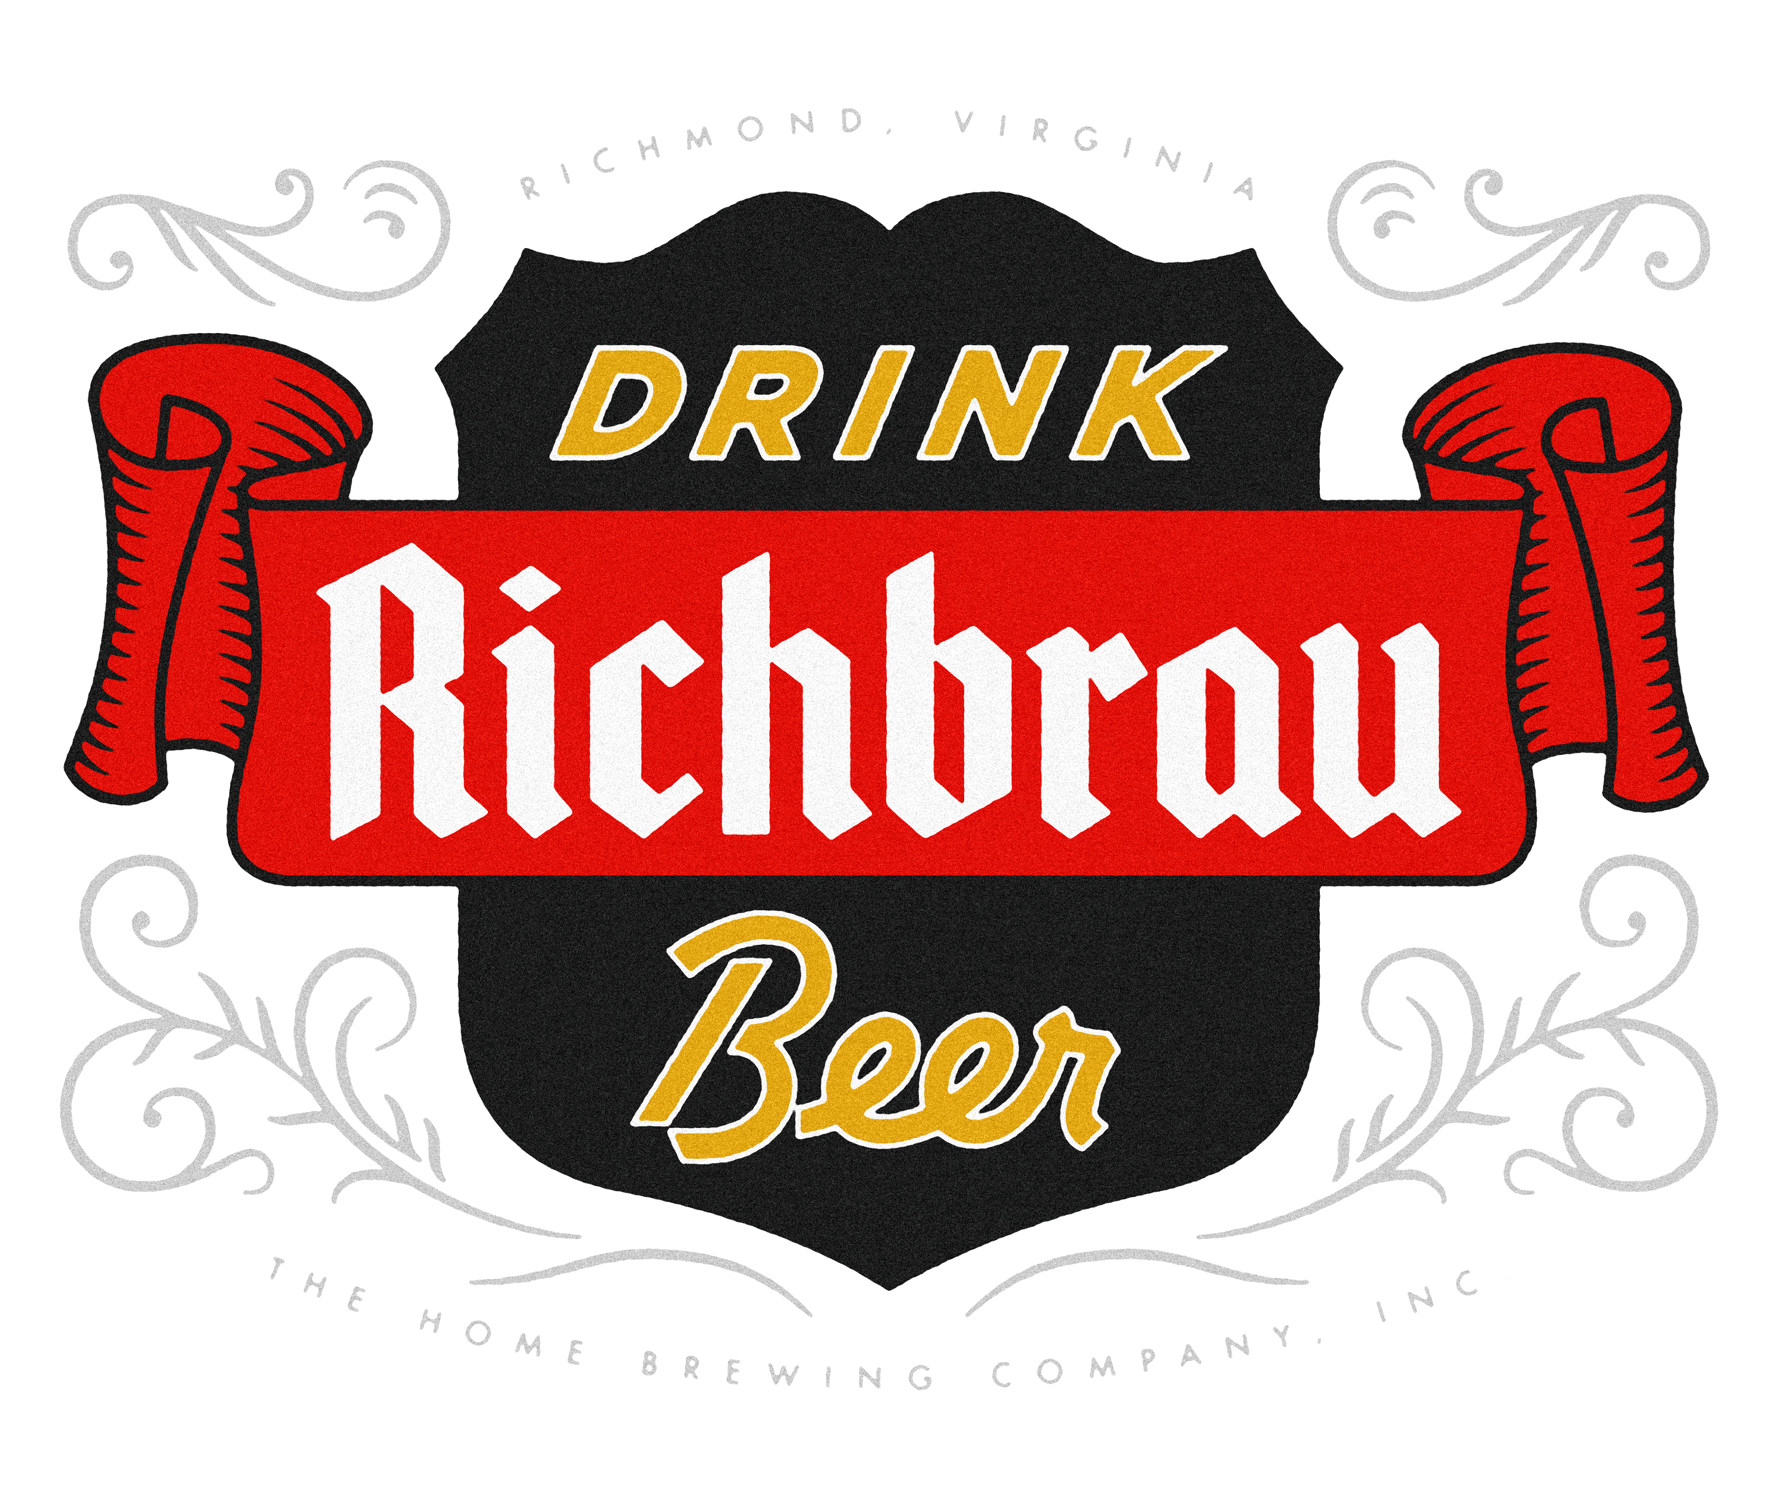 Drink richbrau beer